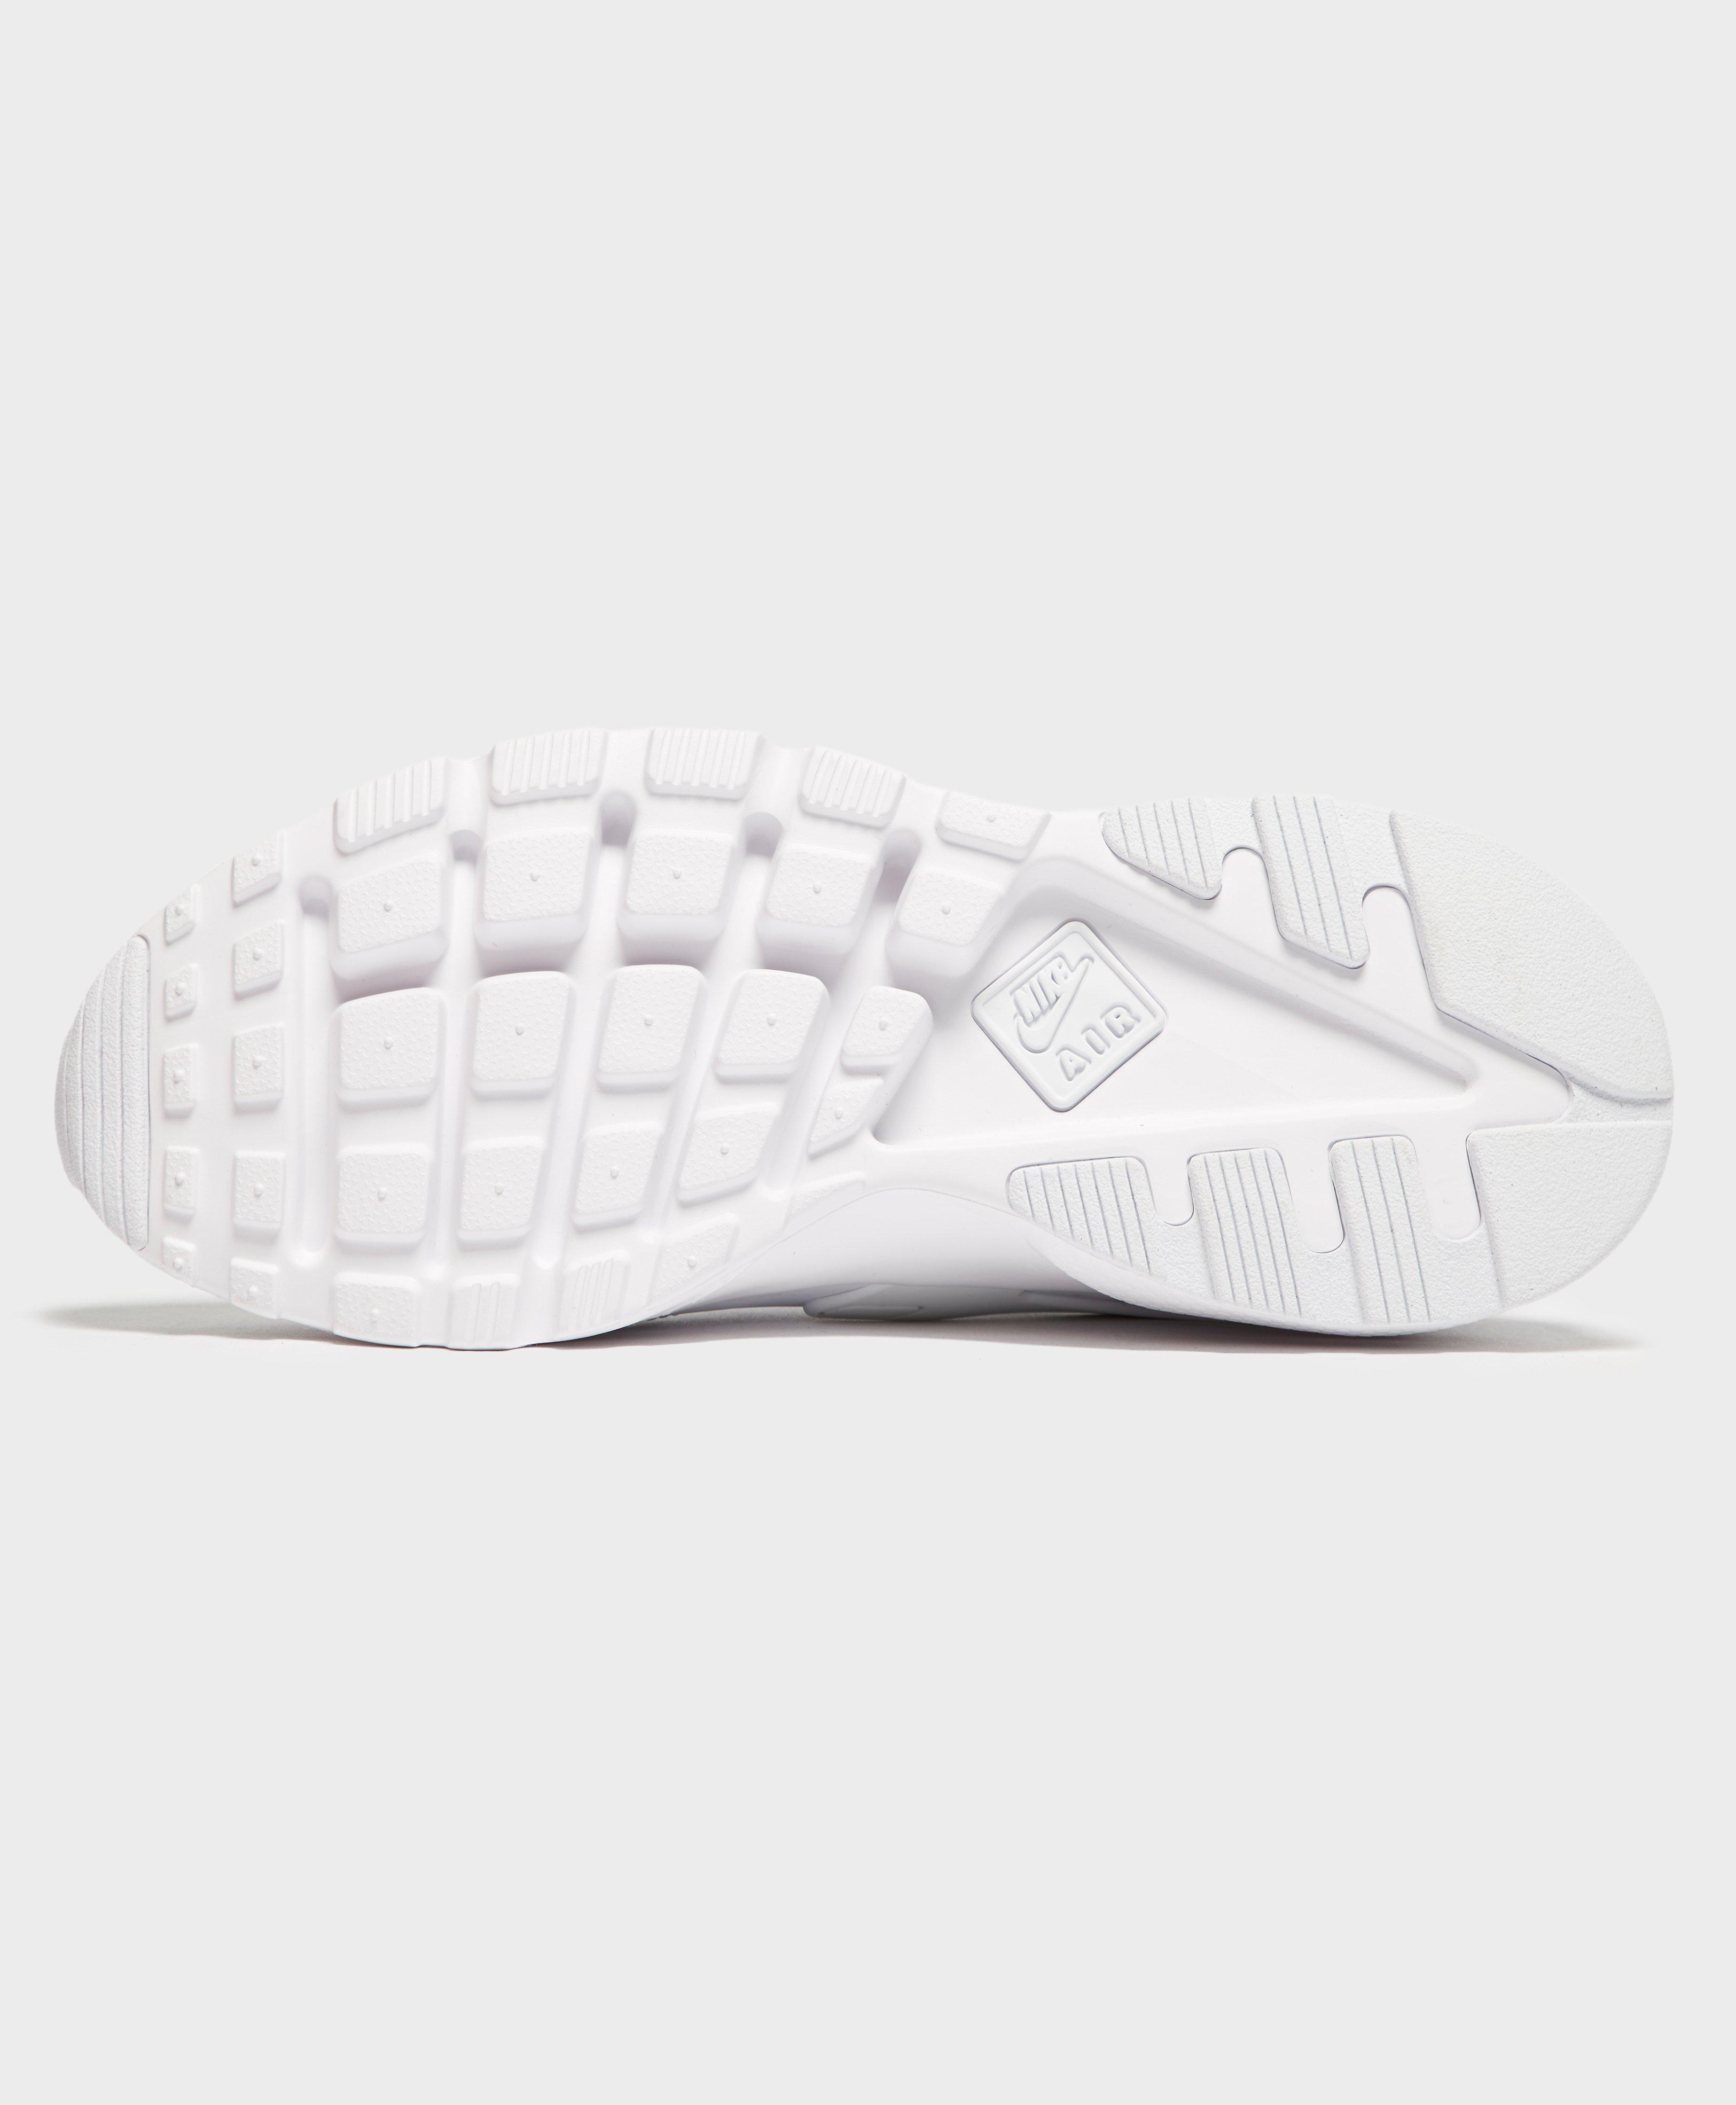 outlet store 43ea2 44246 Nike Air Huarache Ultra Trainers White in White for Men - Save 45% - Lyst